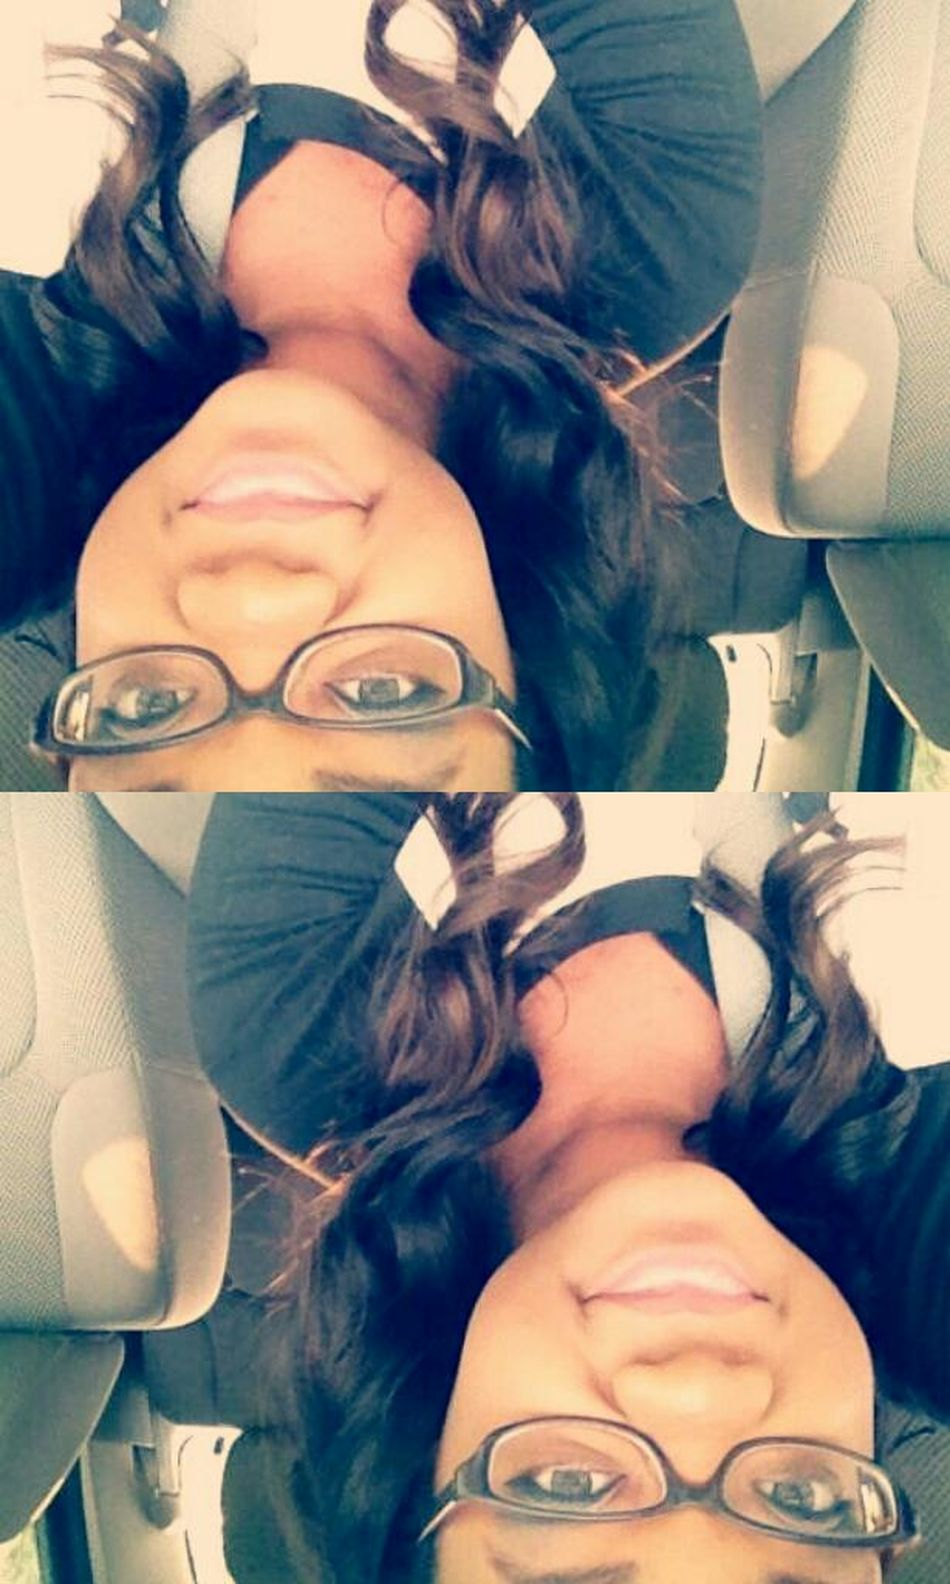 Upside Down I'm Cool  Extremely Bored Kbye